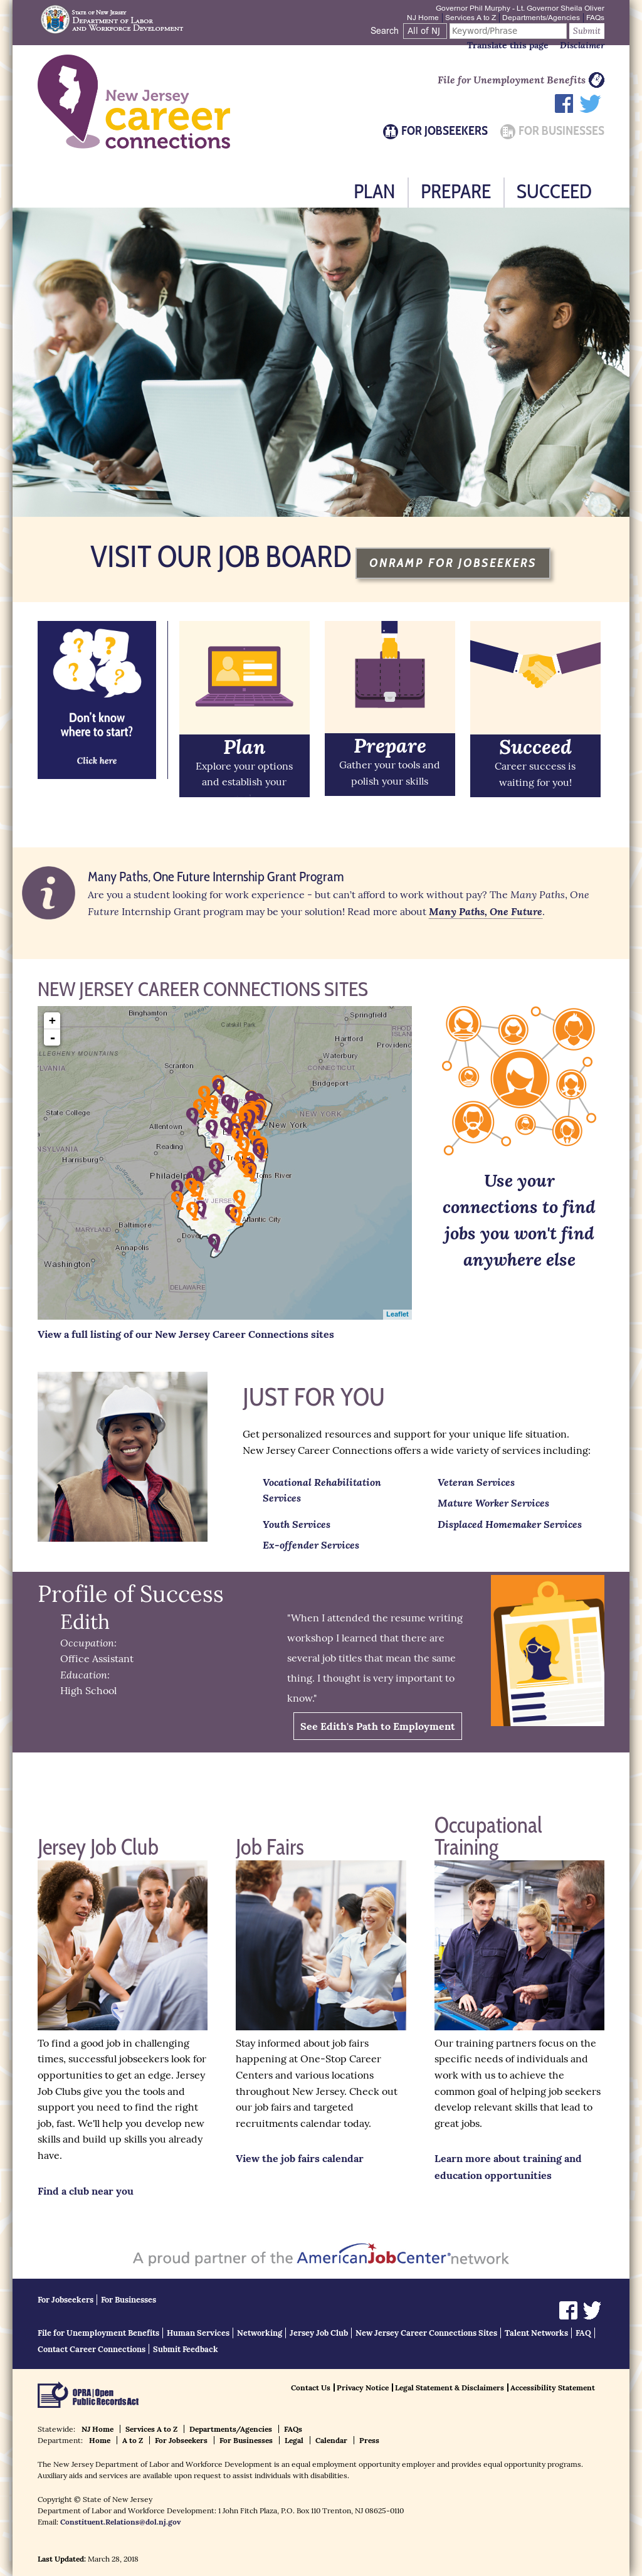 Jobs4Jersey Competitors, Revenue and Employees - Owler Company Profile